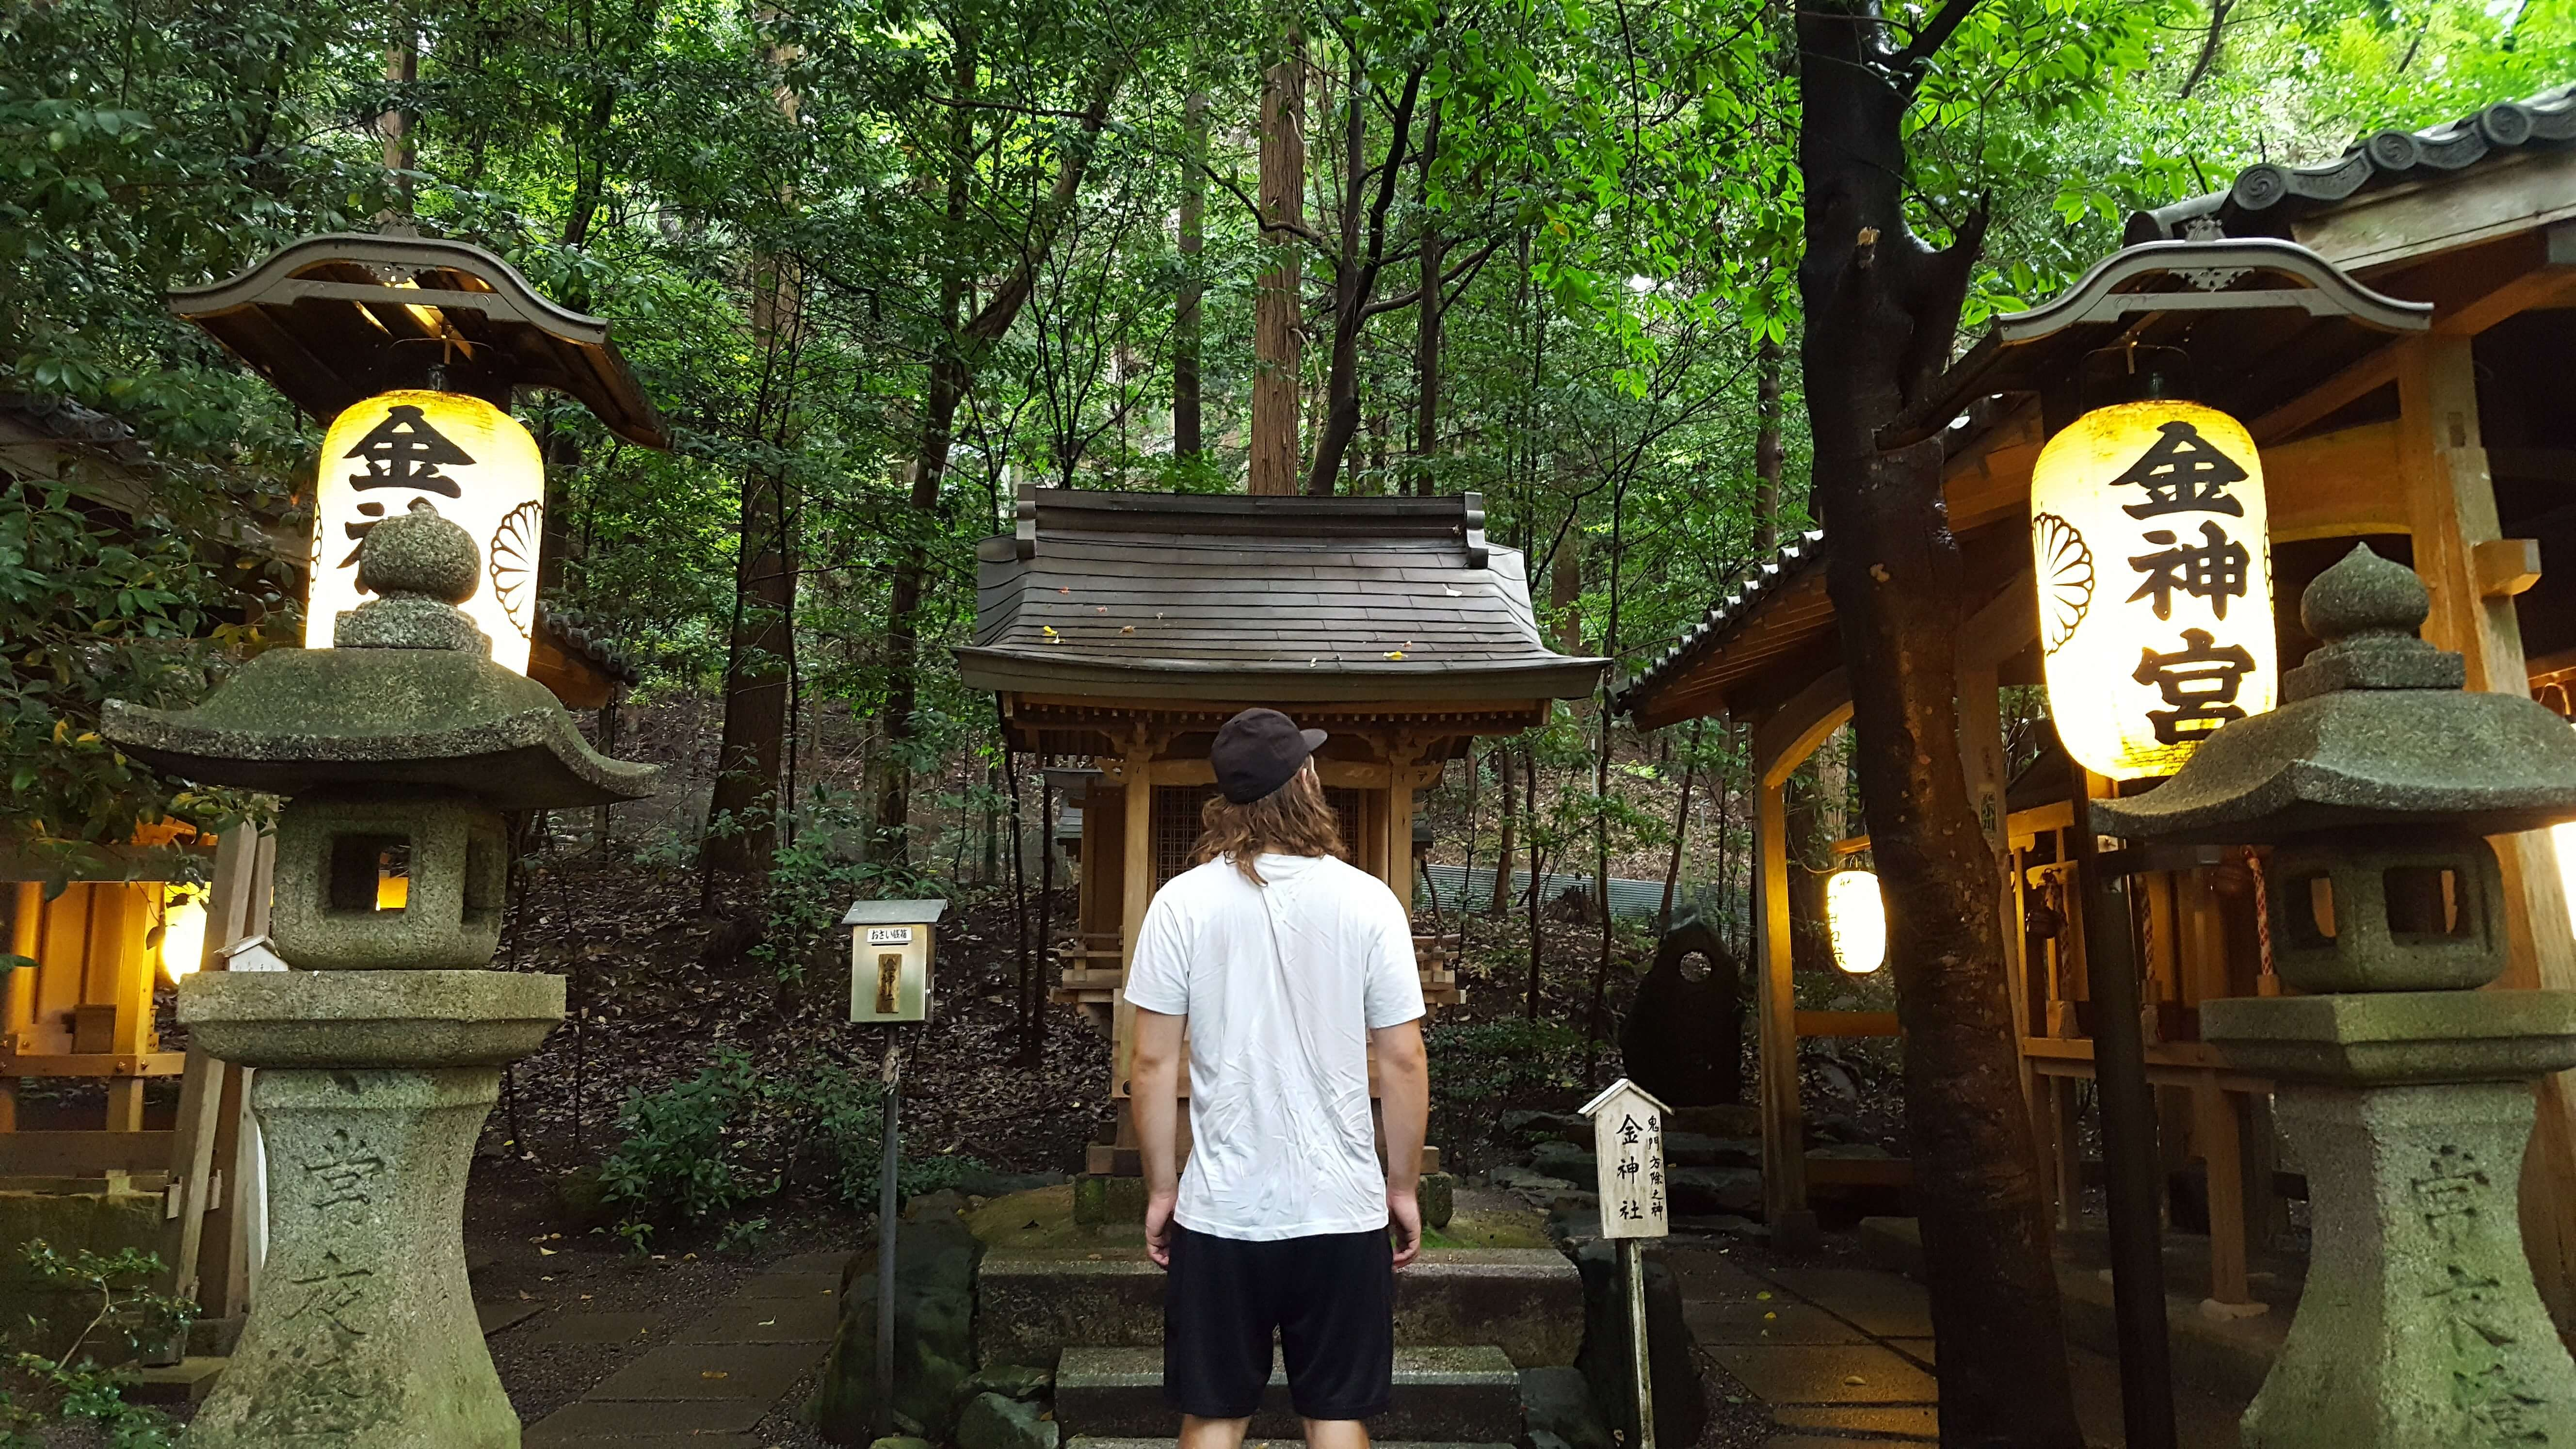 An-image-showing-the-best-things-to-do-in-kyoto